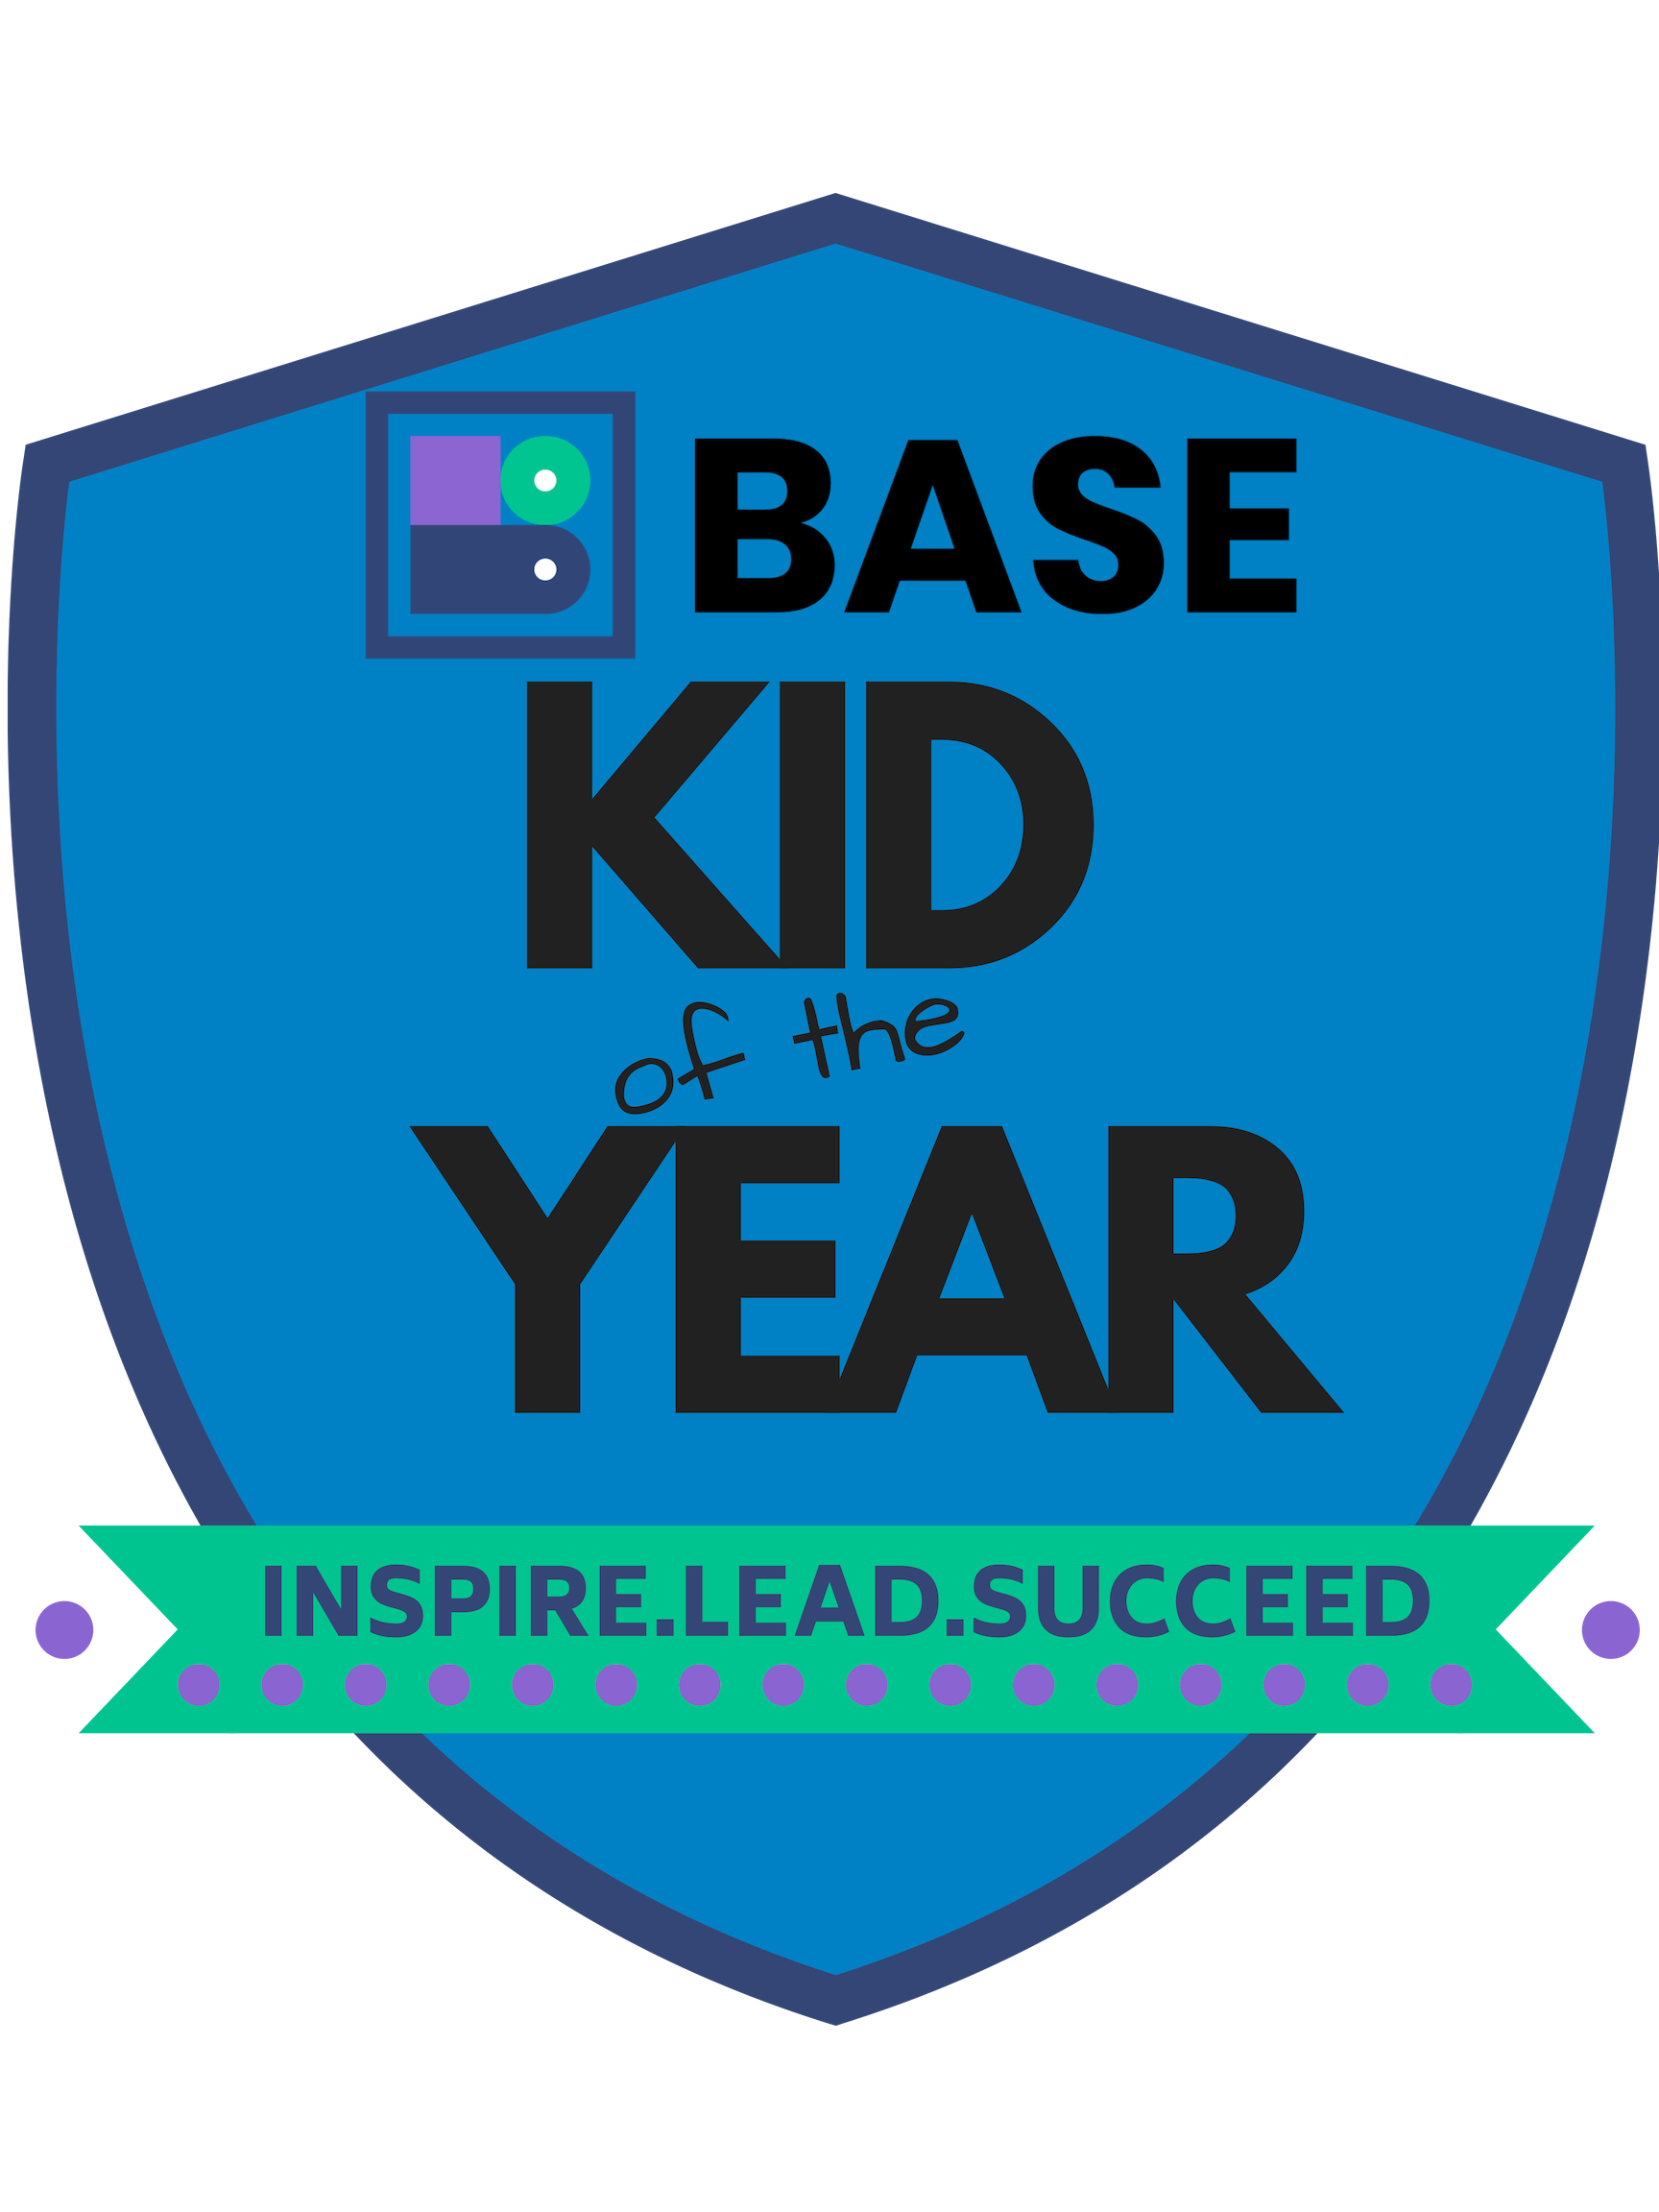 Celebrating youth who inspire, lead and succeed! - Thursday, May 2nd 20197:30am-9:00amFort Atkinson Club